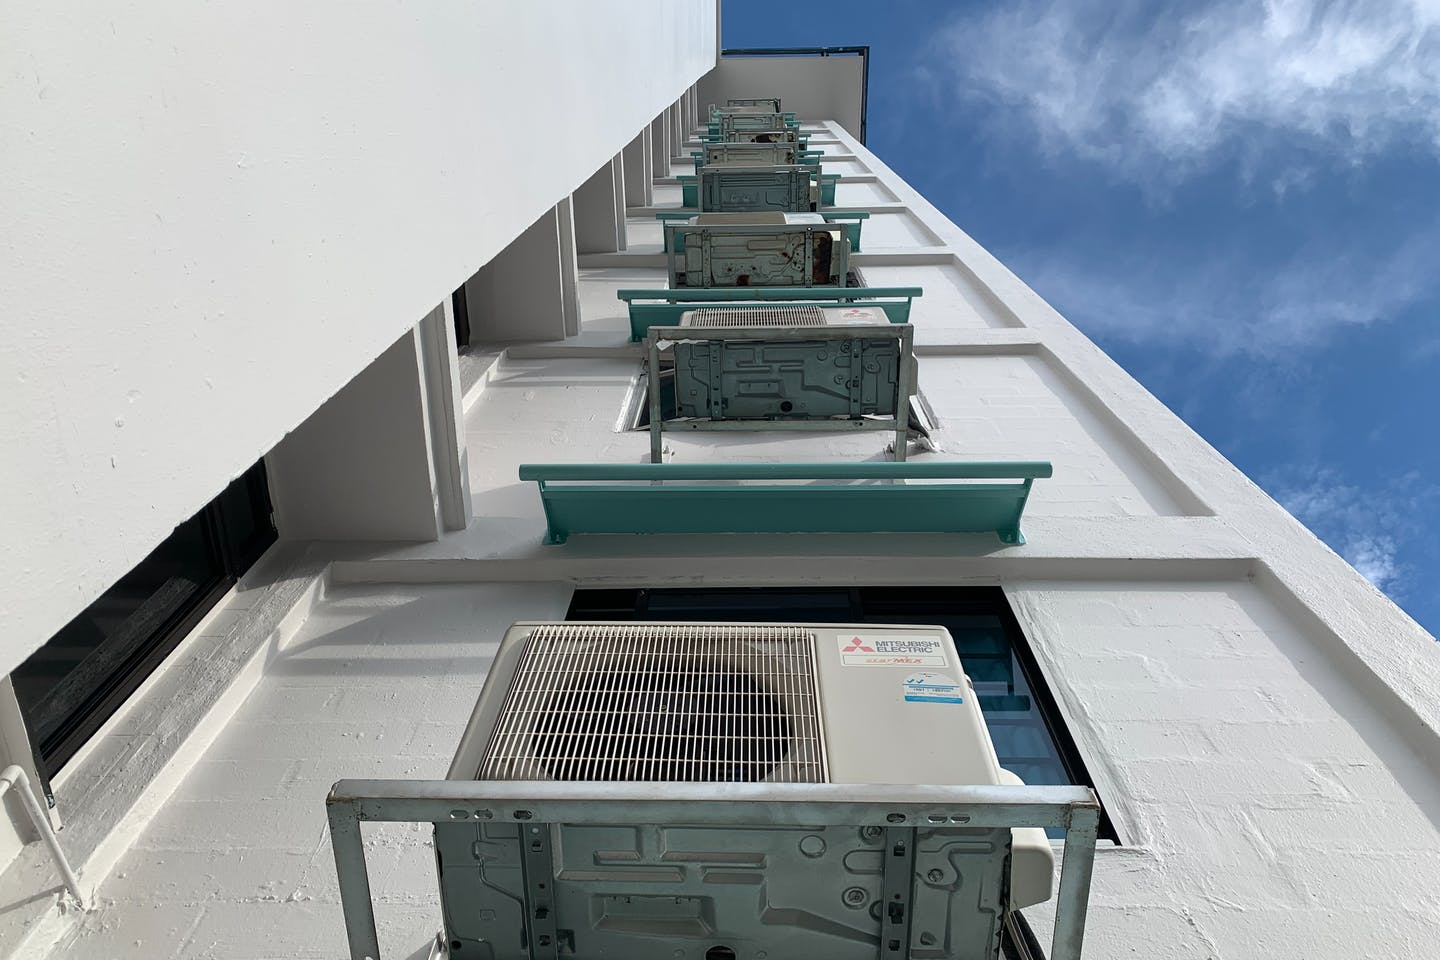 Air-conditioning units on a building in Singapore